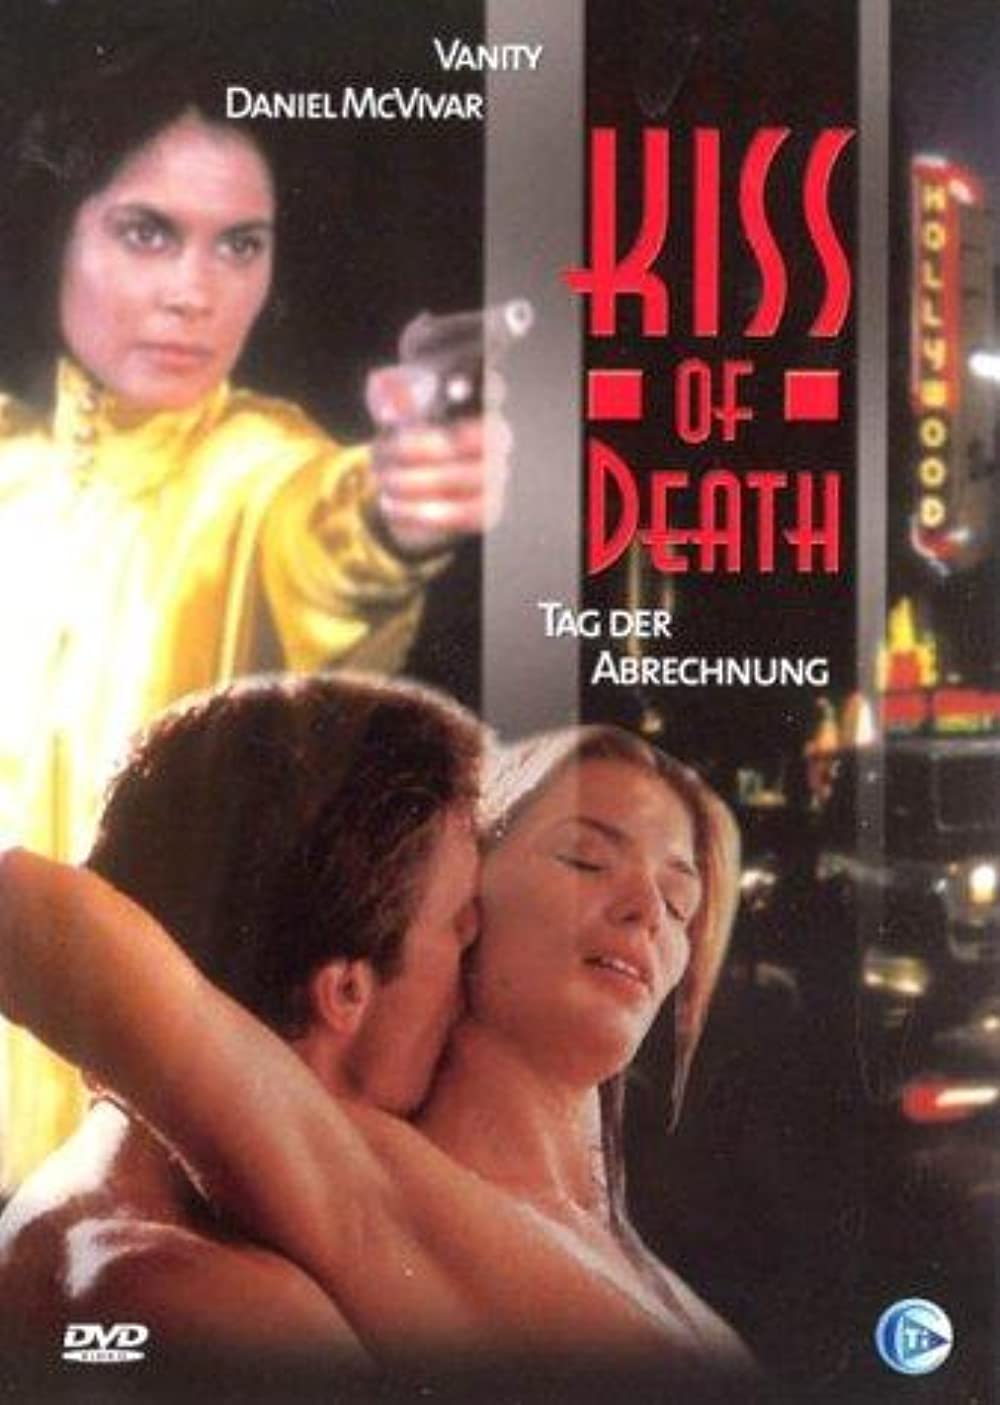 18+ Kiss of Death 1997 Dual Audio Hindi 720p UNRATED DVDRip 1.1GB Download